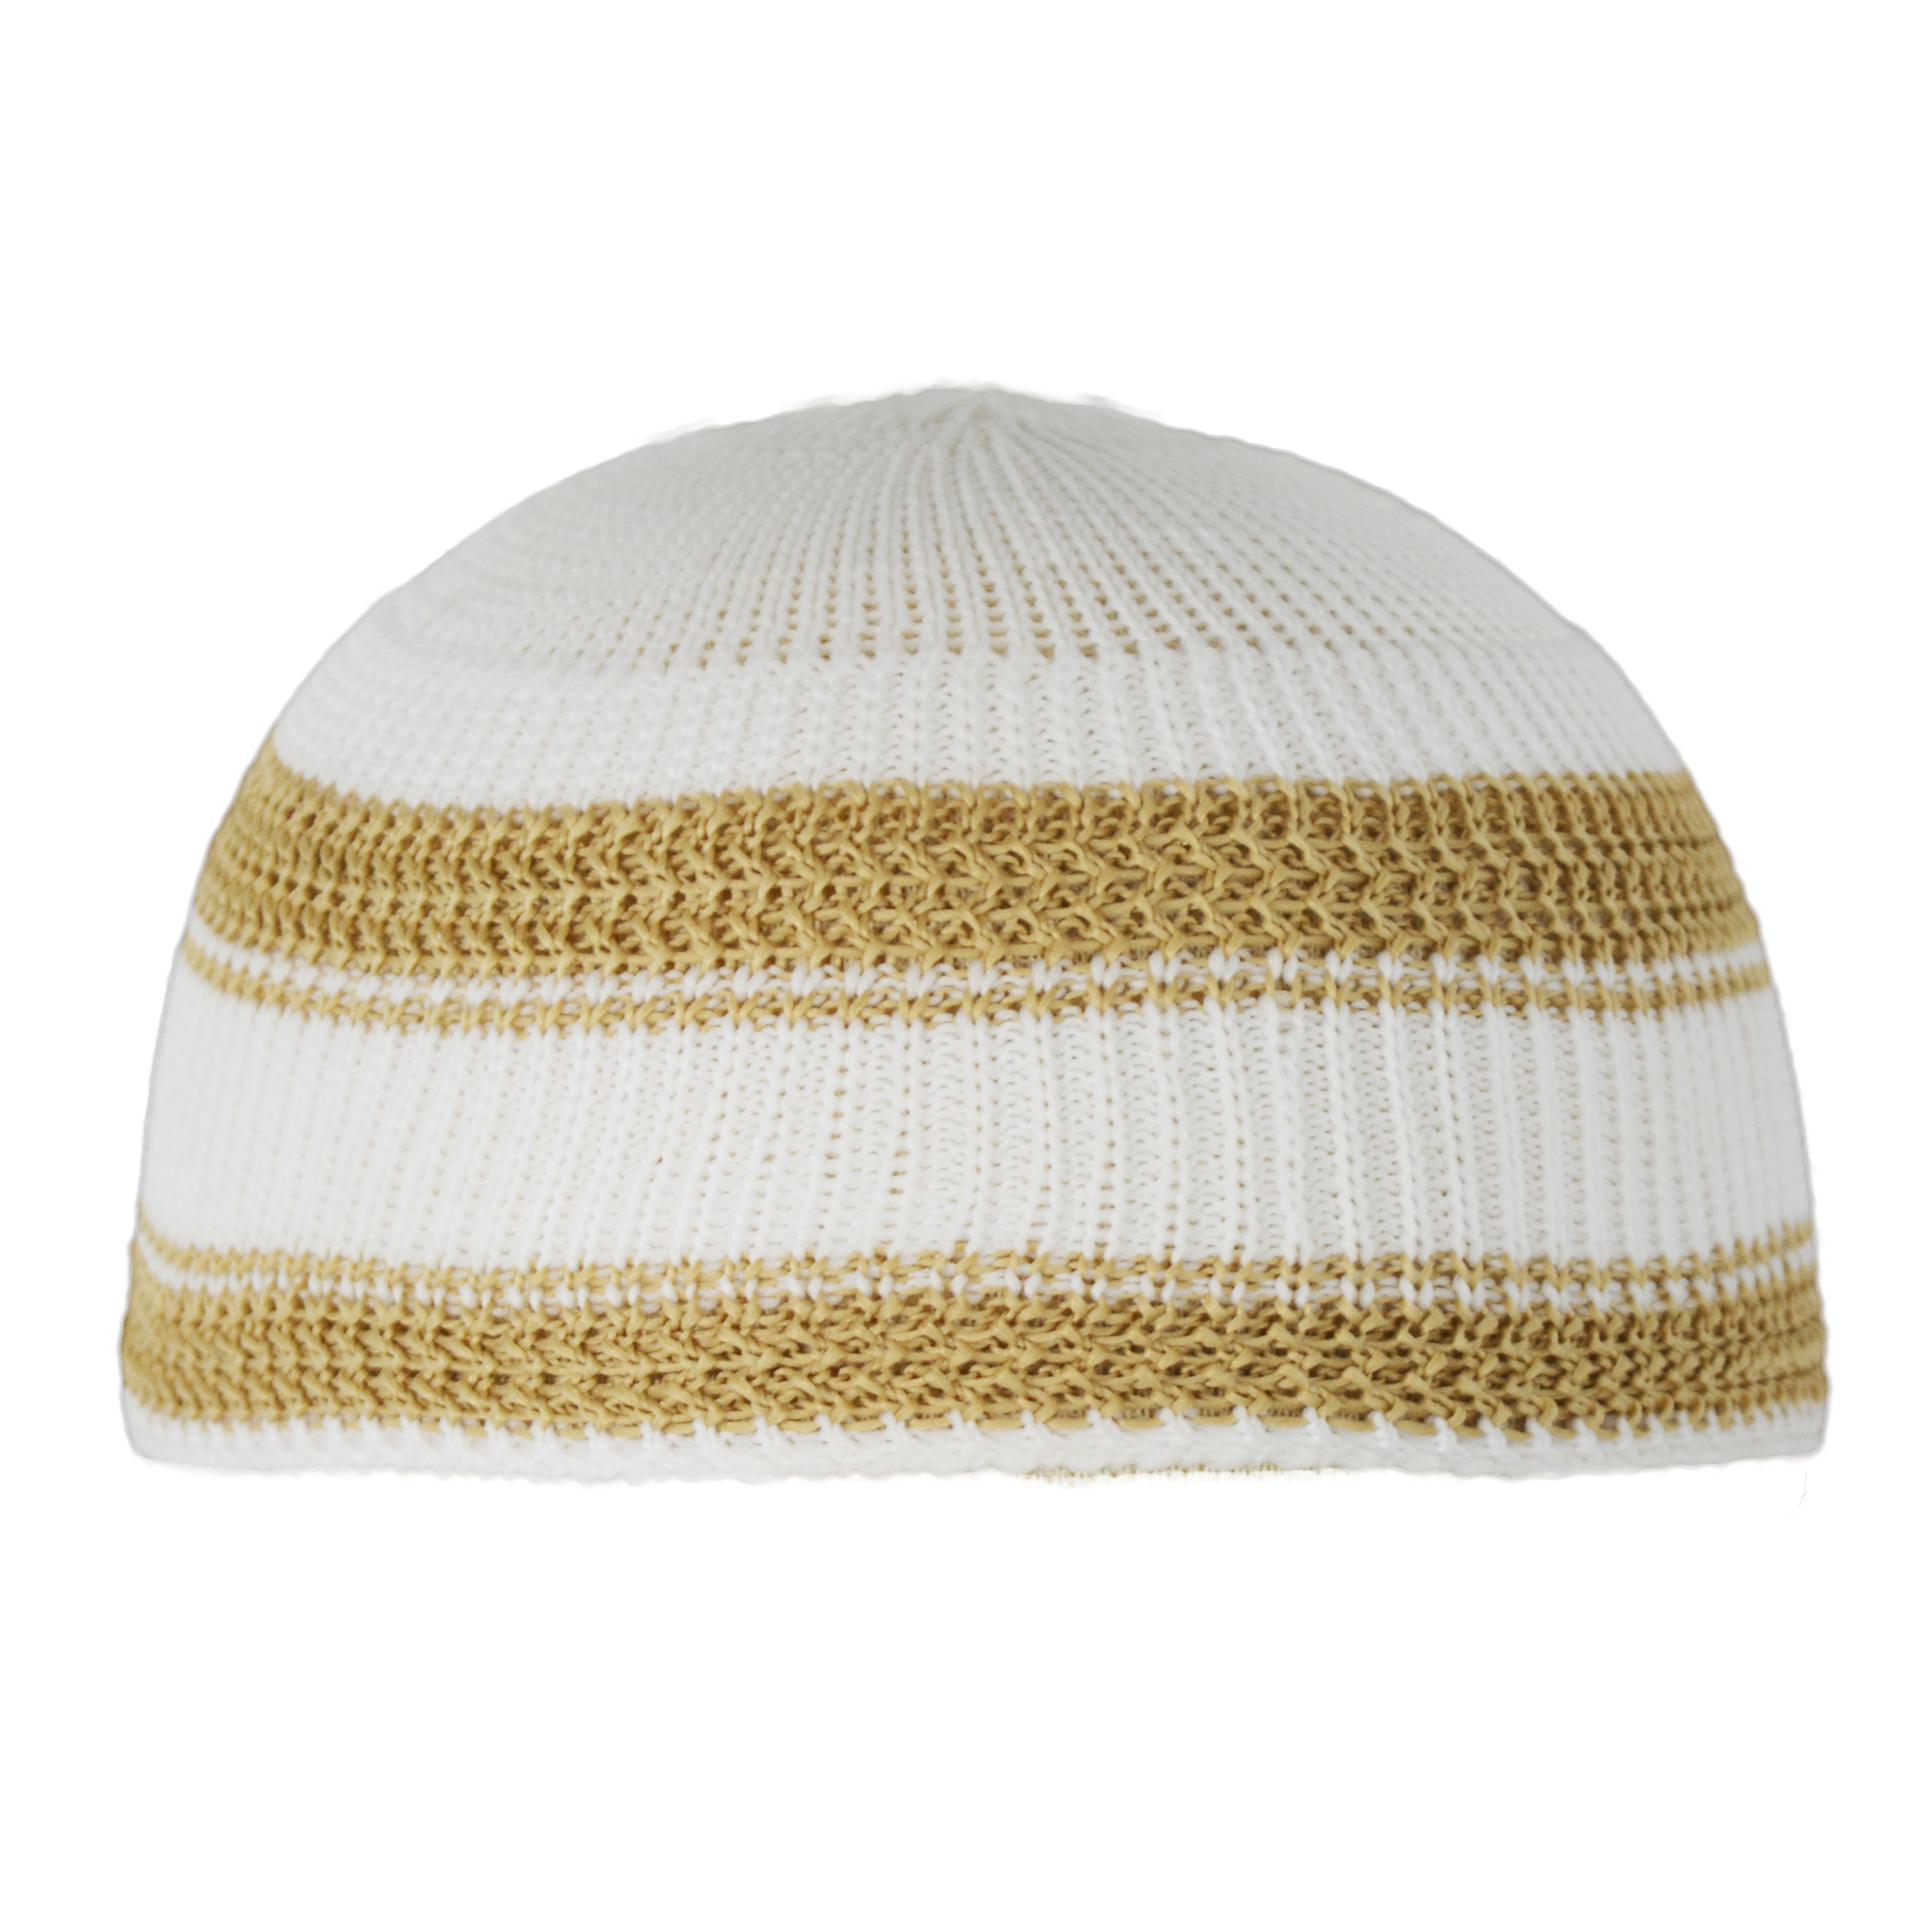 Knitted Kufi with Bold Solid Color Lines ME716 Khaki